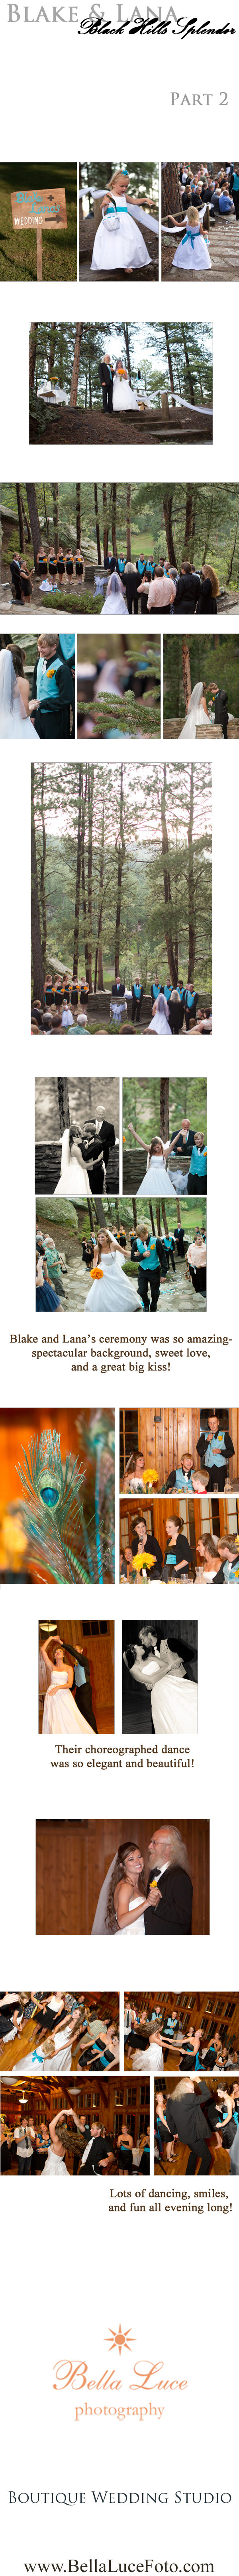 Wedding Photographers in the Black Hills